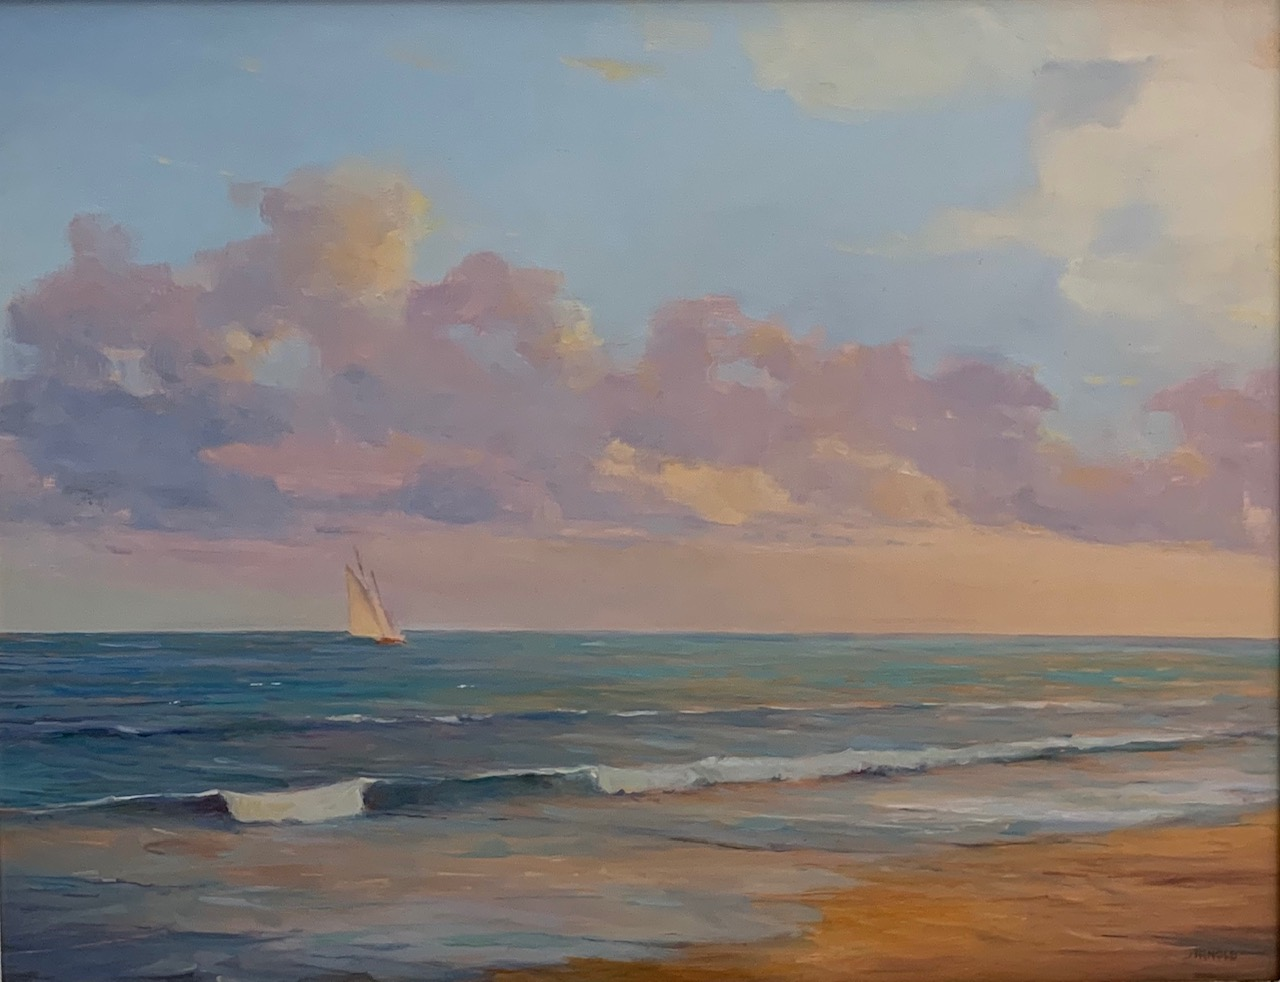 Of Light & Surf 11x14 Oil on Panel